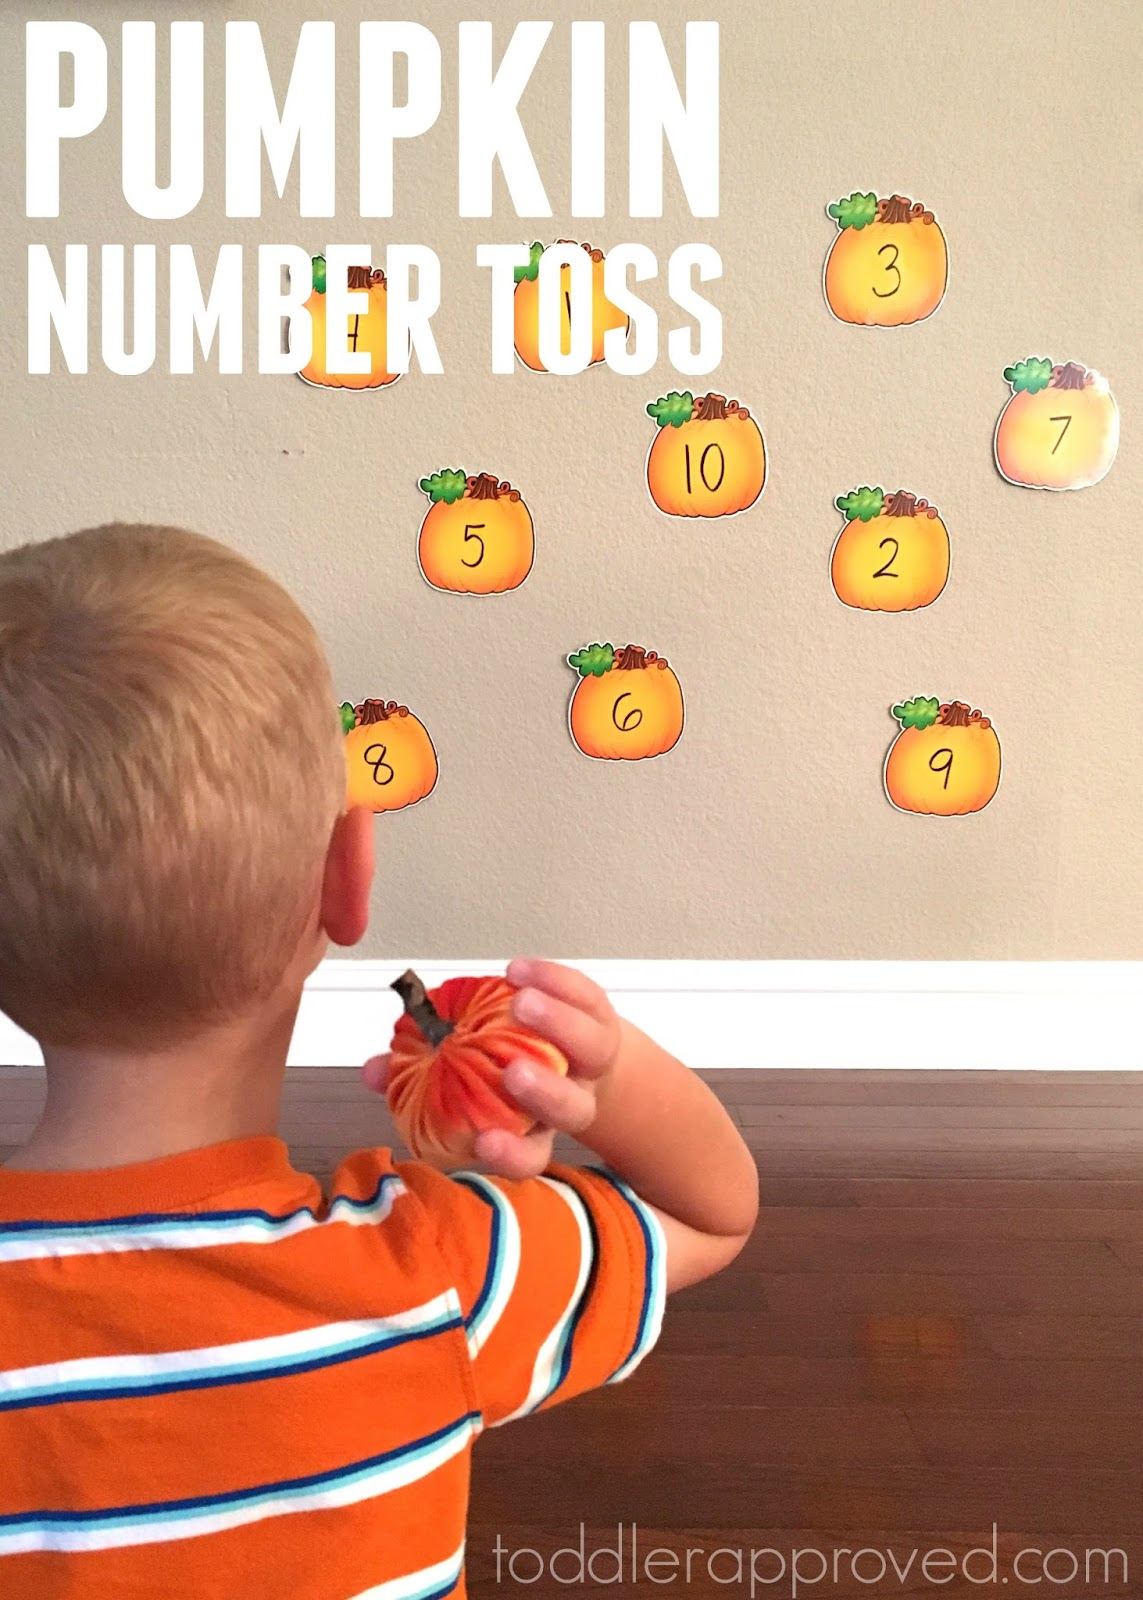 Toddler Approved Pumpkin Number Toss Game For Kids